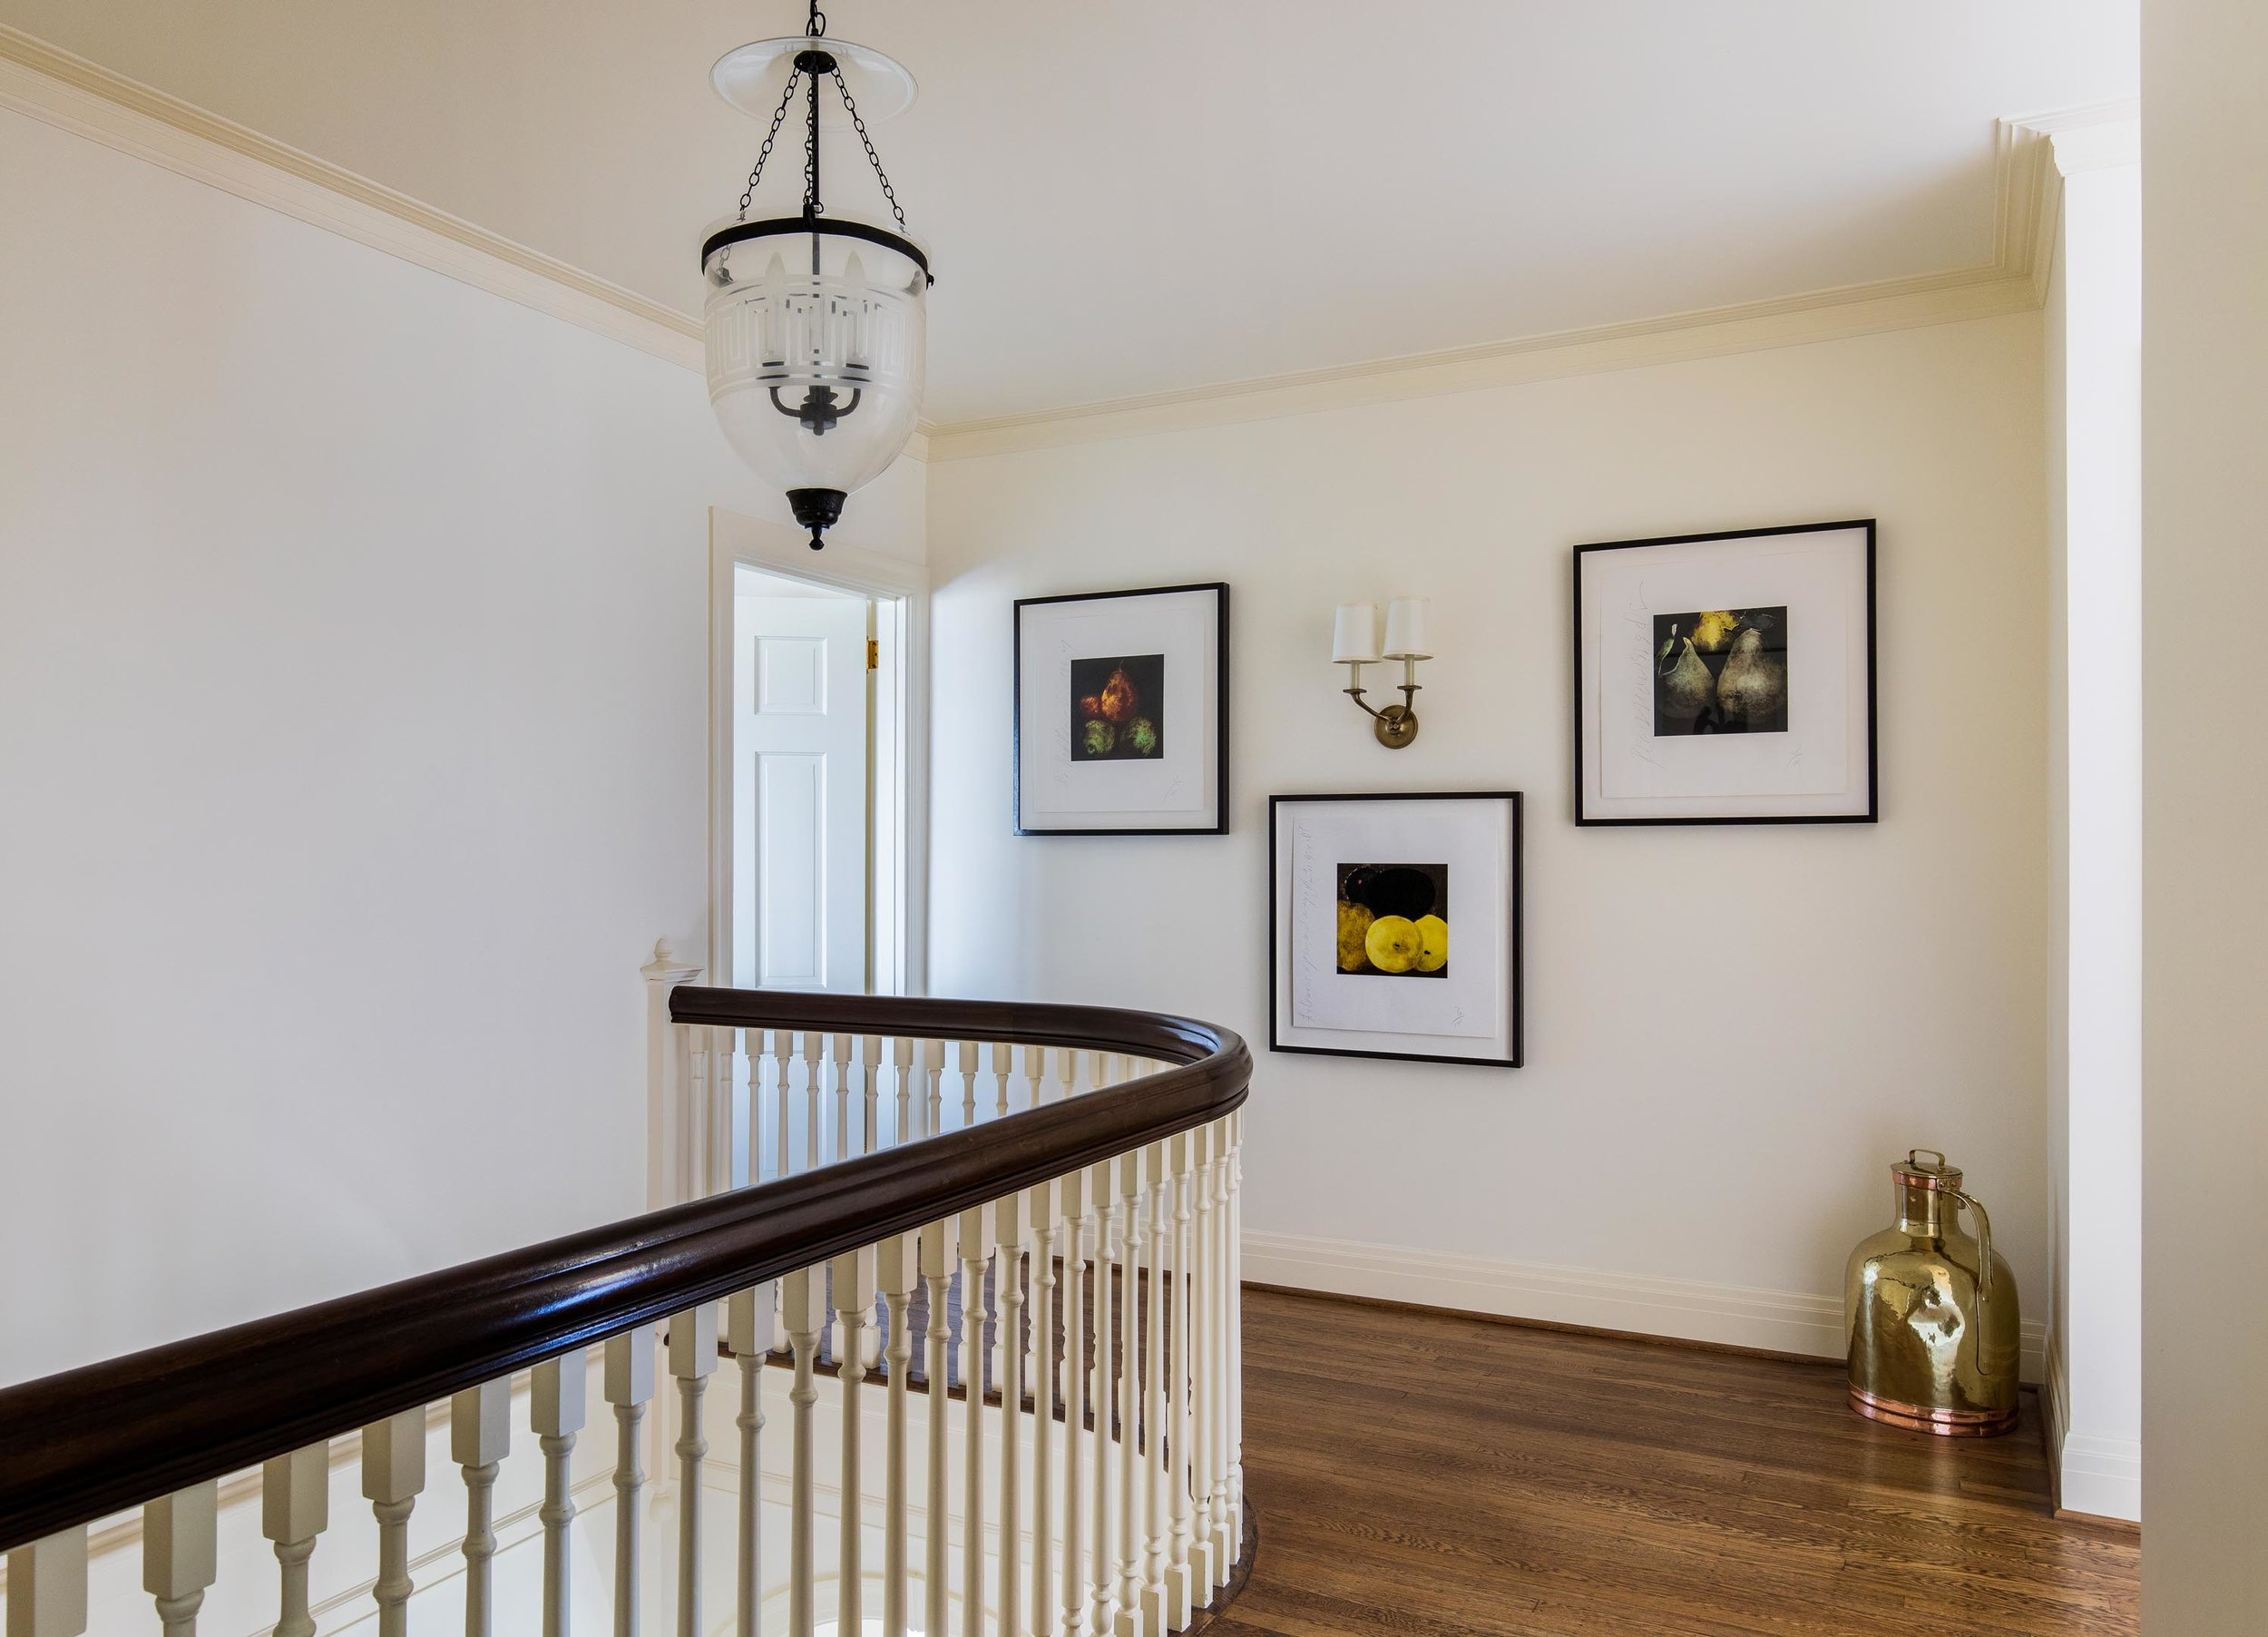 Second floor house interior with hardwood floor and wooden railings